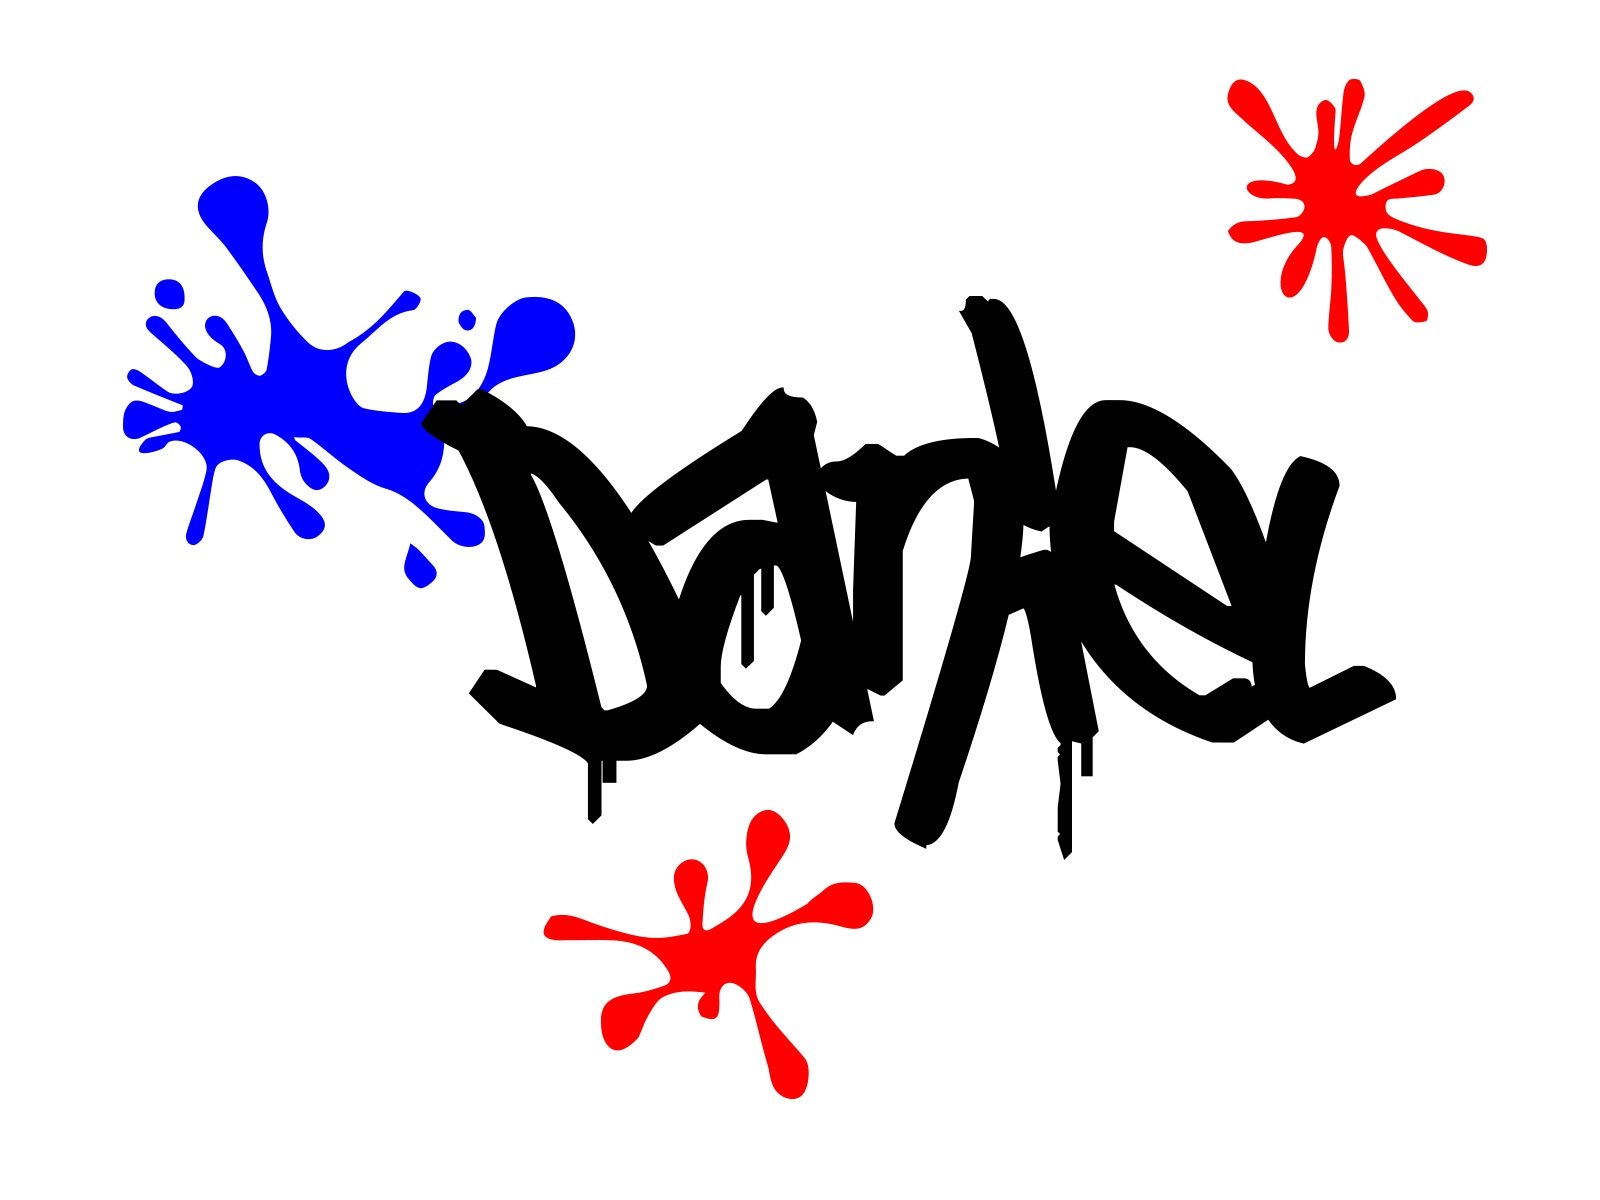 Graffiti splashes personalised name wall door custom vinyl decal sticker